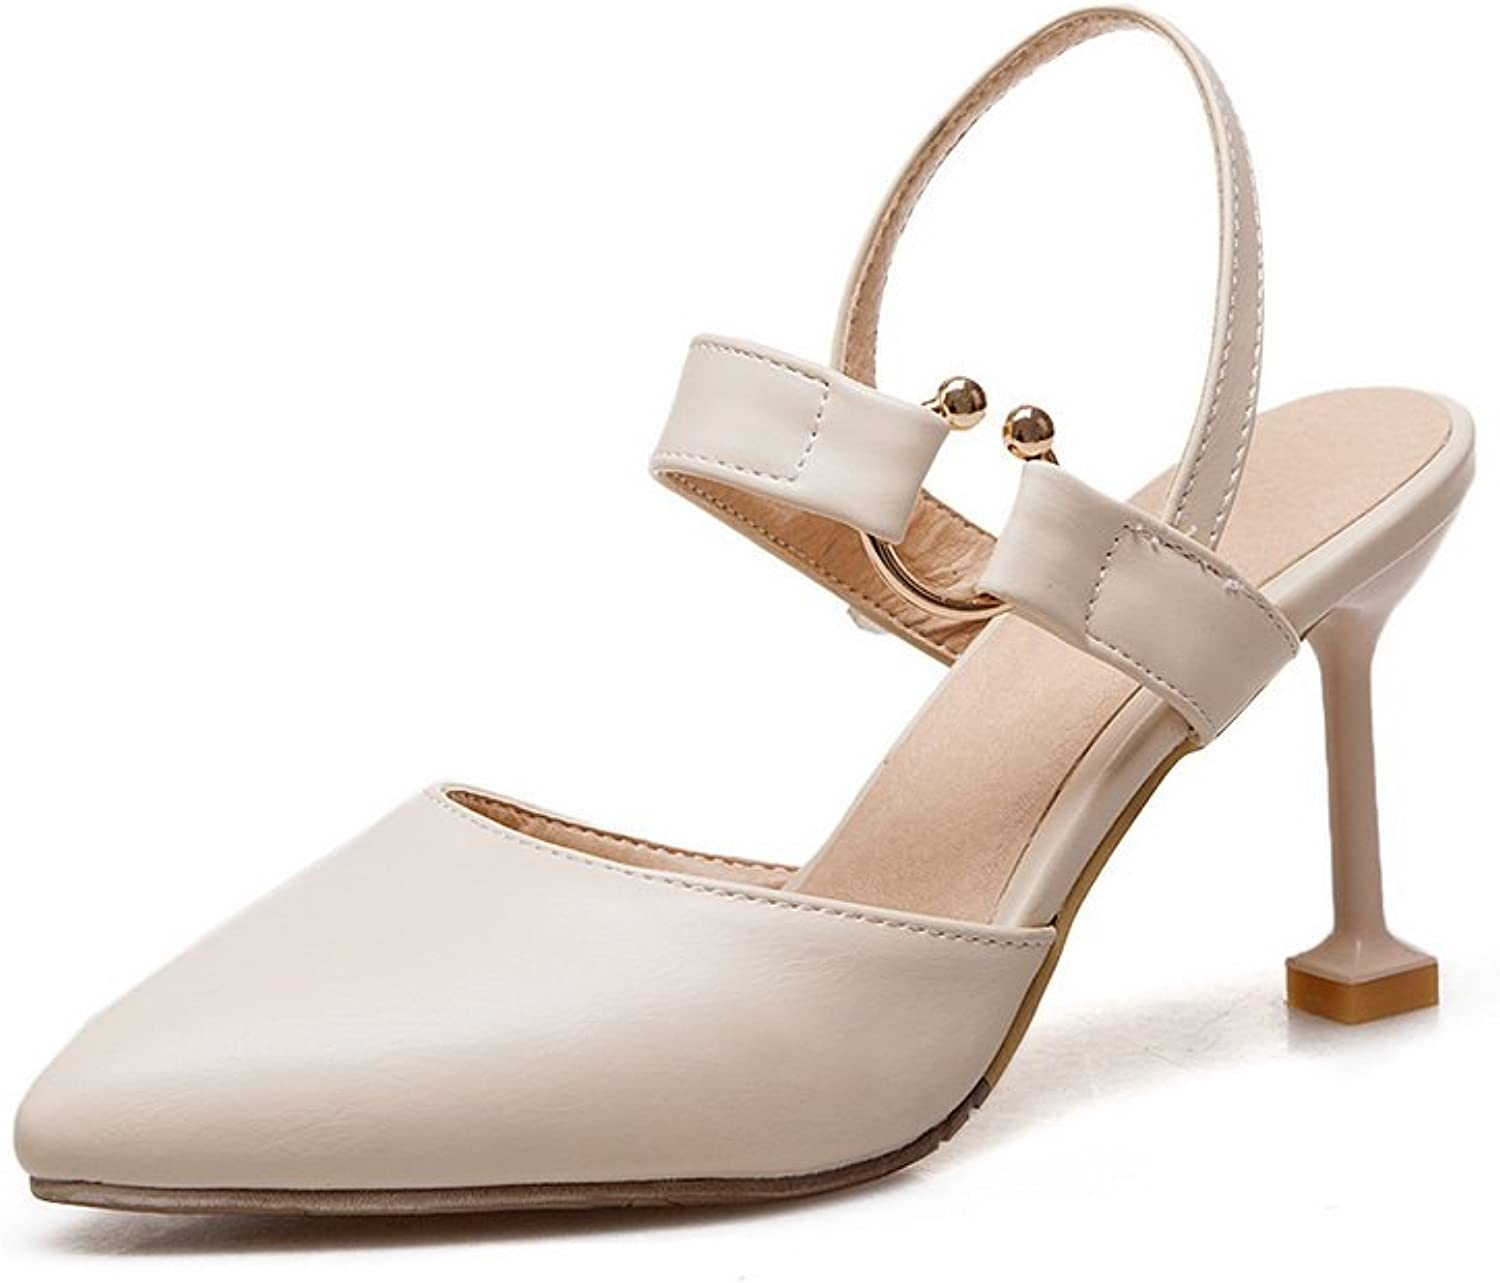 AdeeSu Womens Pumps-shoes Closed-Toe Buckle Adjustable-Strap Cold Lining Not_Water_Resistant Track Light-Weight Urethane Pumps shoes SLC03466